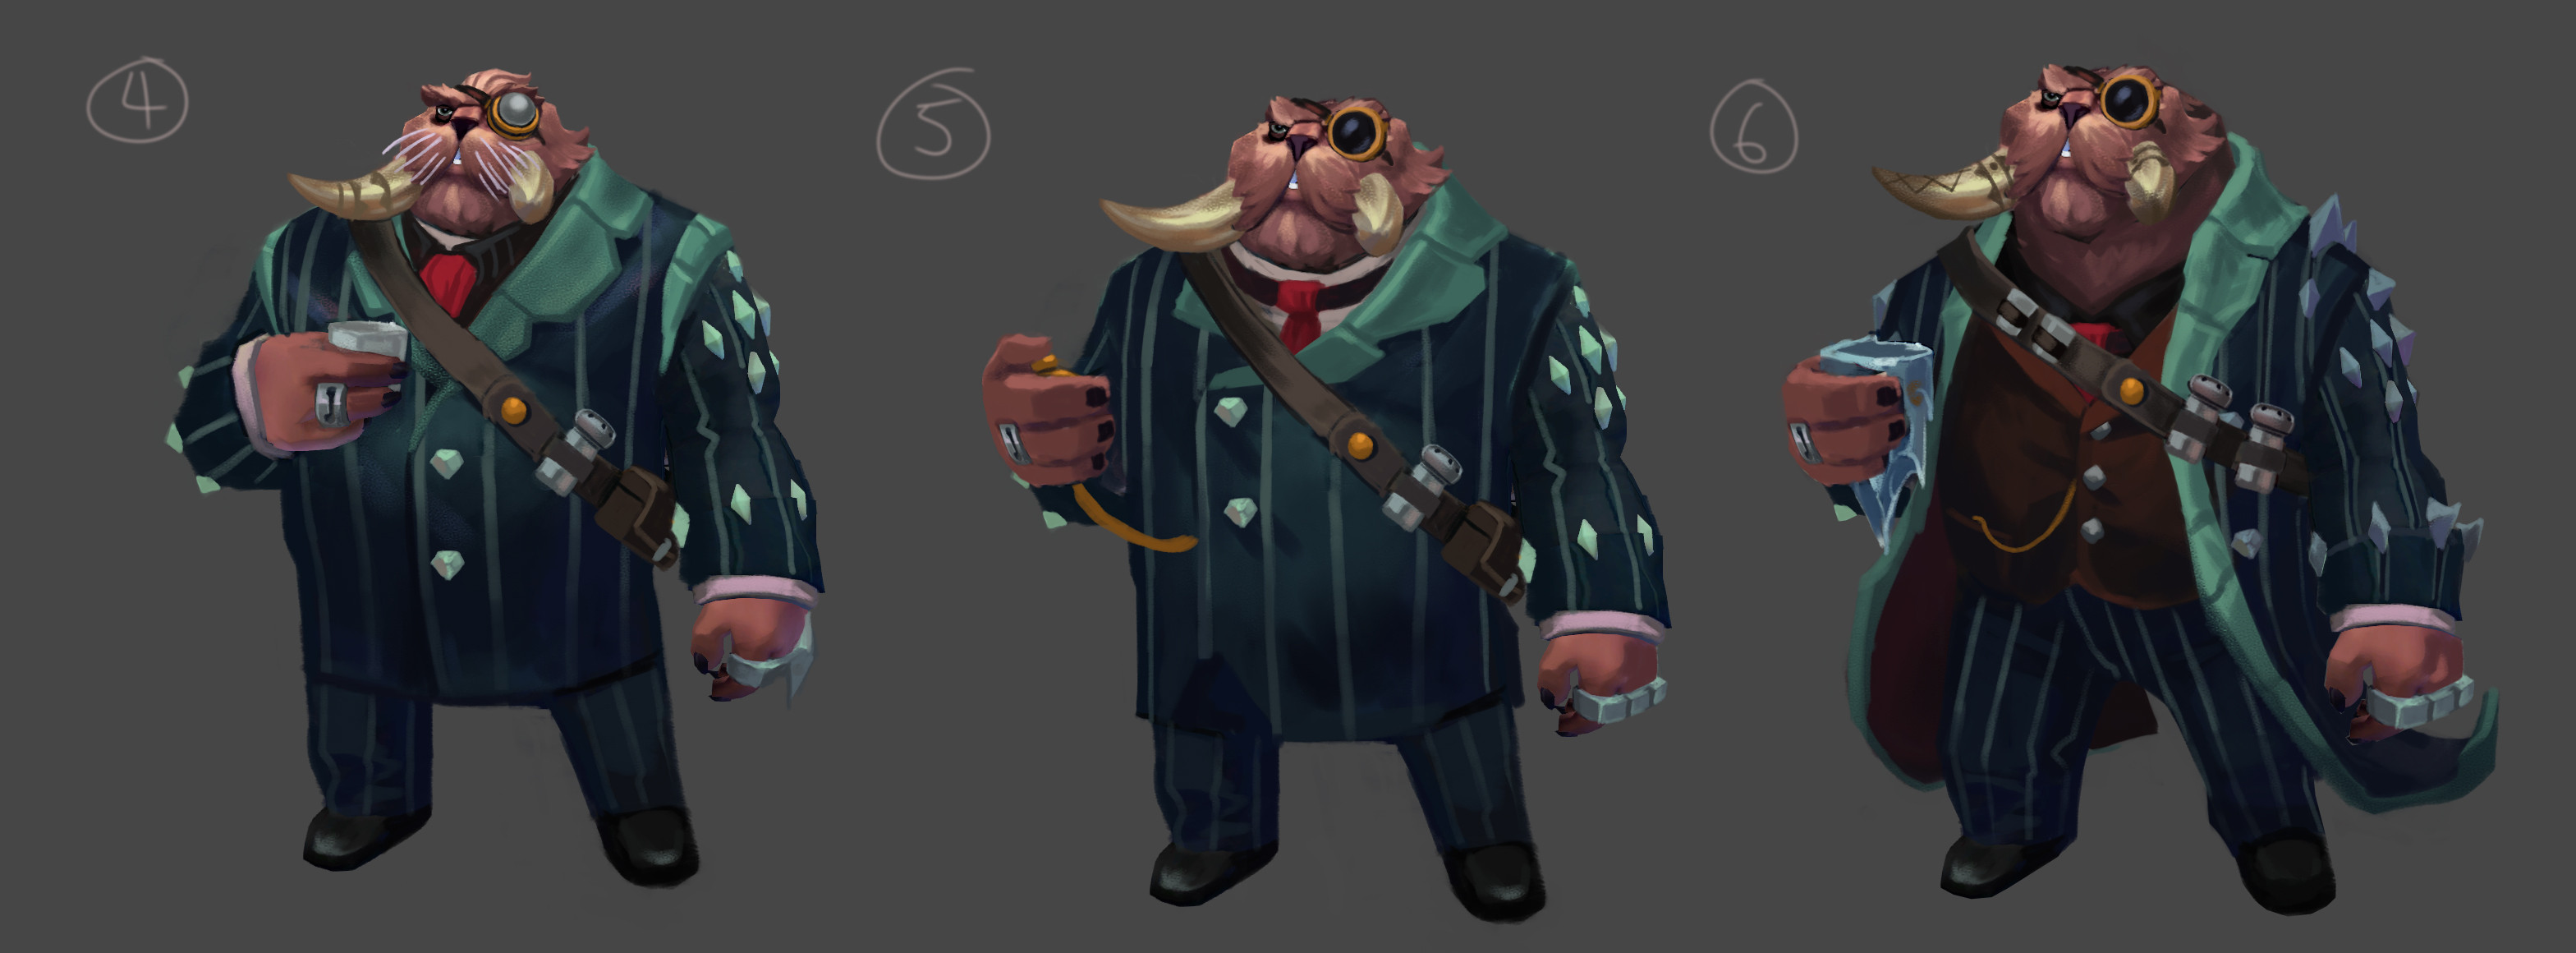 Concepting some Jull visual development Exploration - revamping his look,  clarify his clothing with his lore.  Grizzly Bear/Walrus mob boss with a nautical background is what I got to start with.